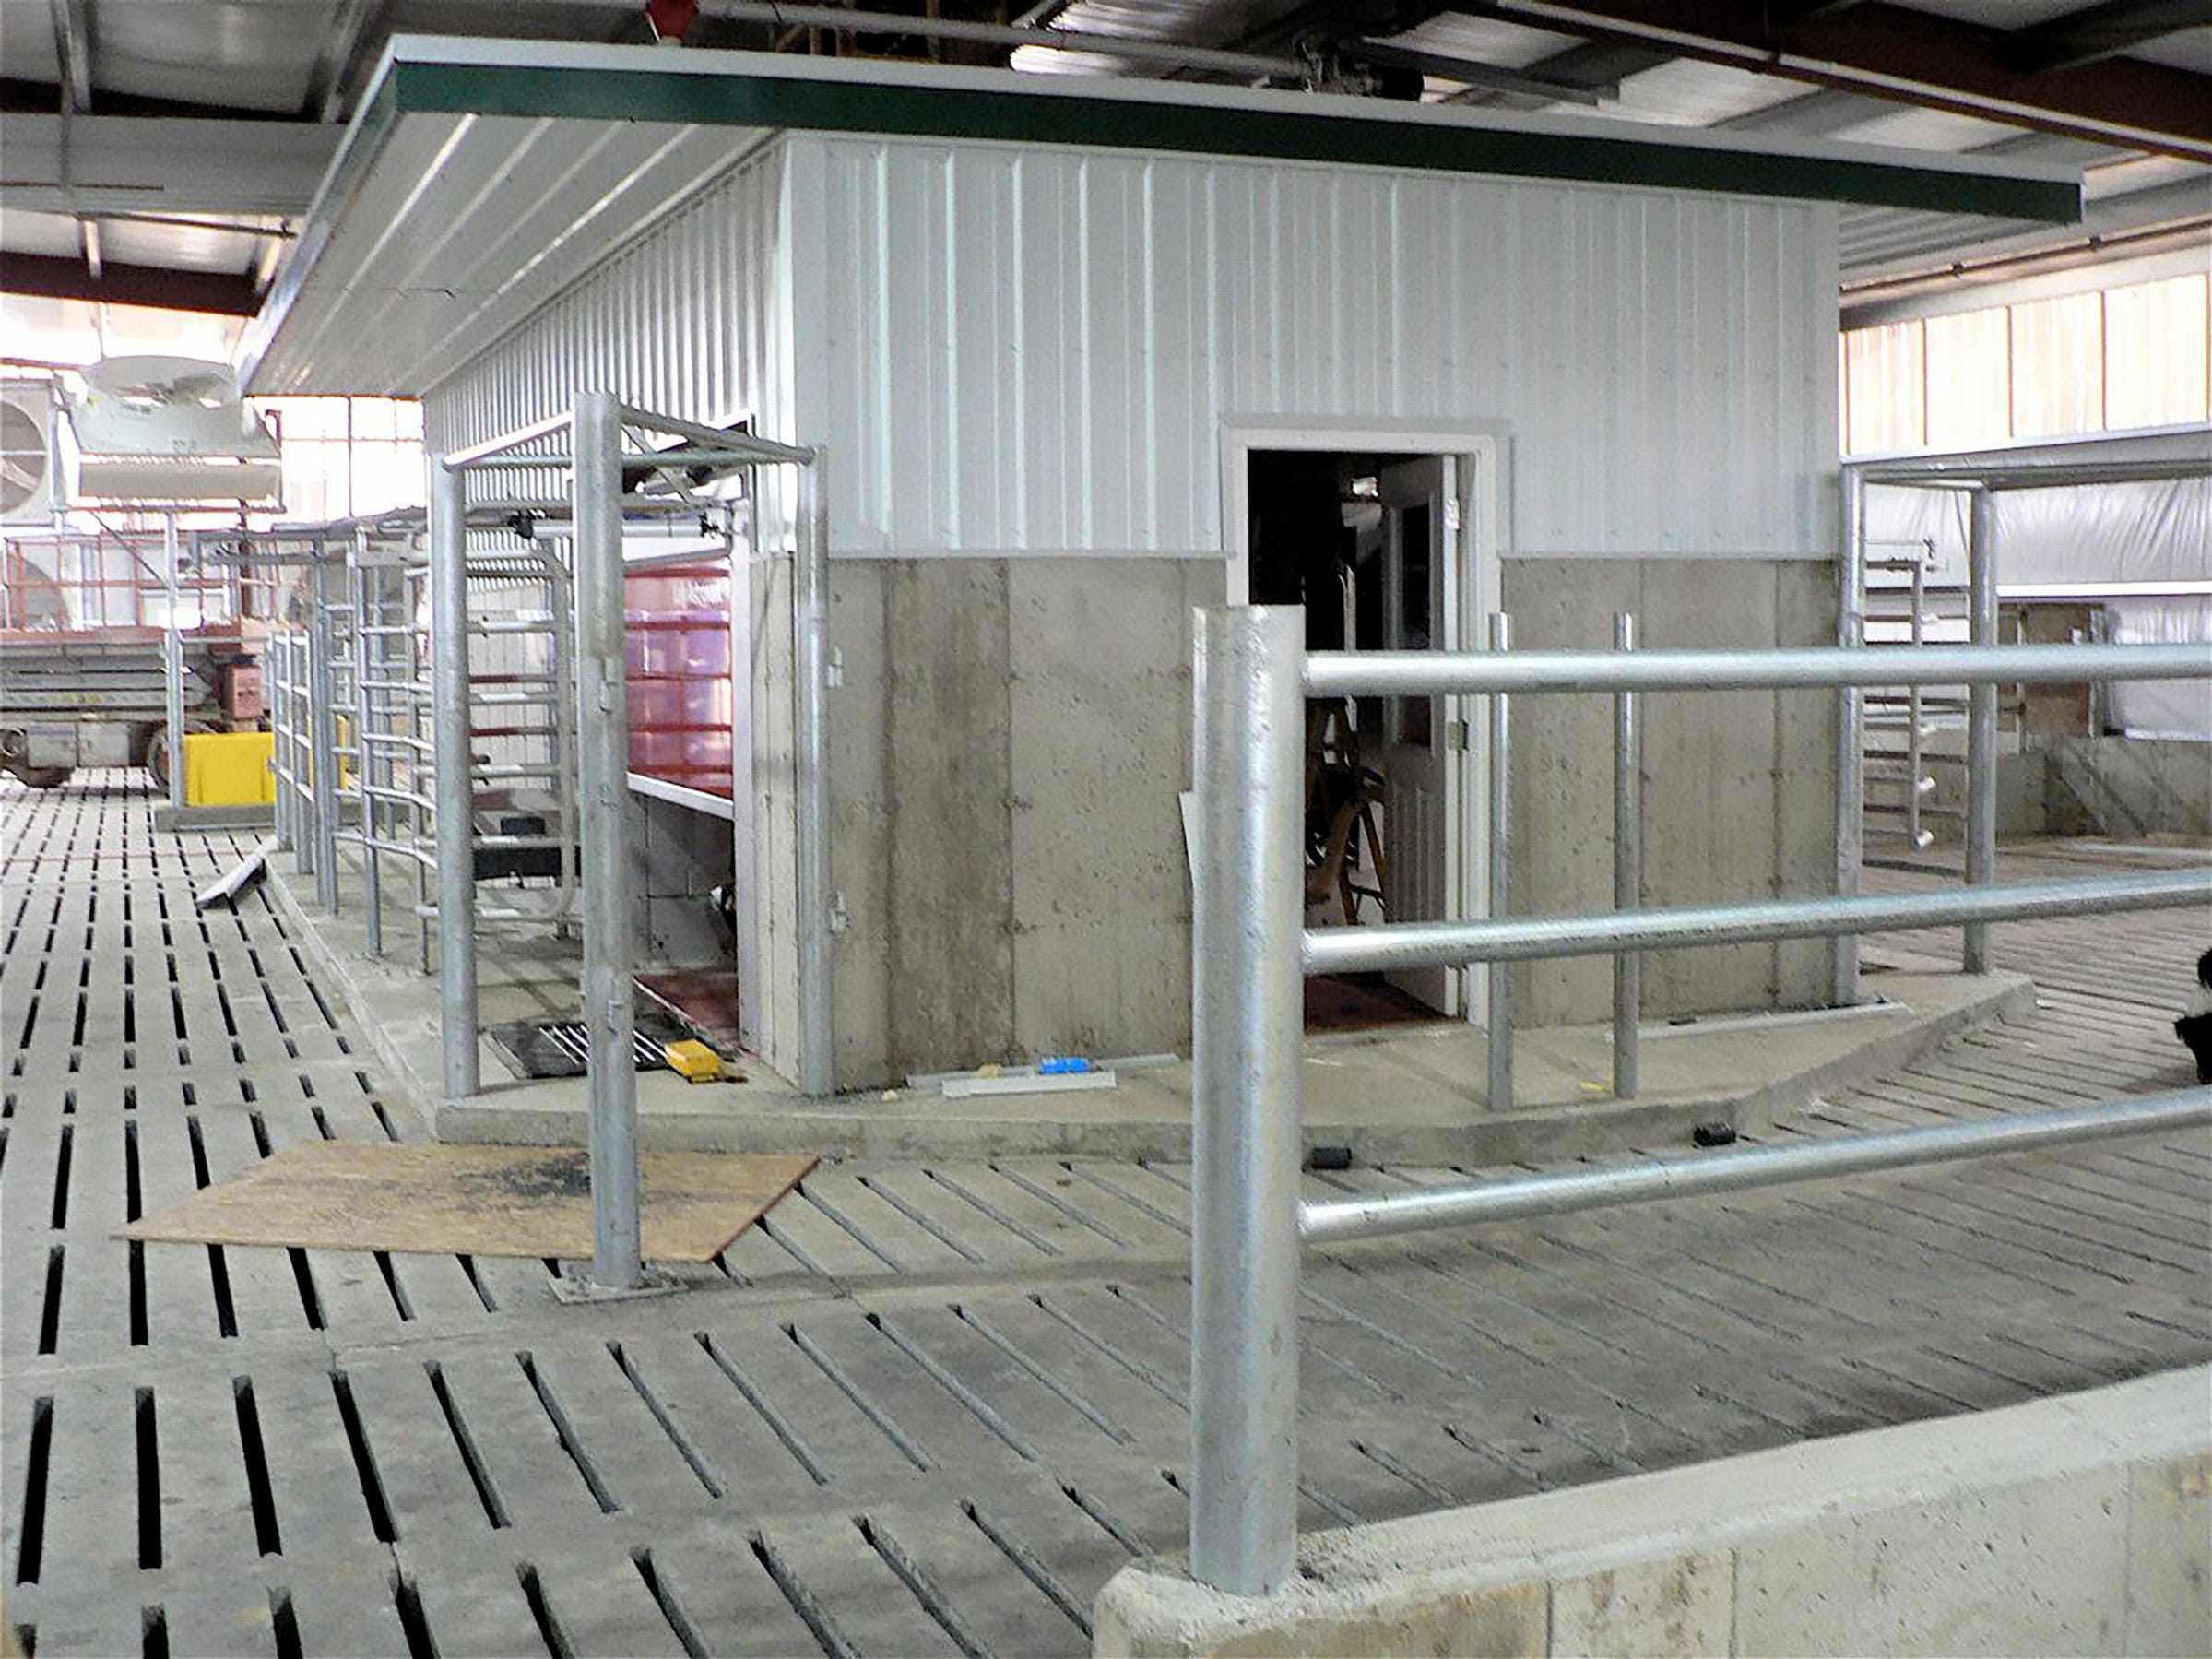 There are two milking centers, each with two robots, one on each side..